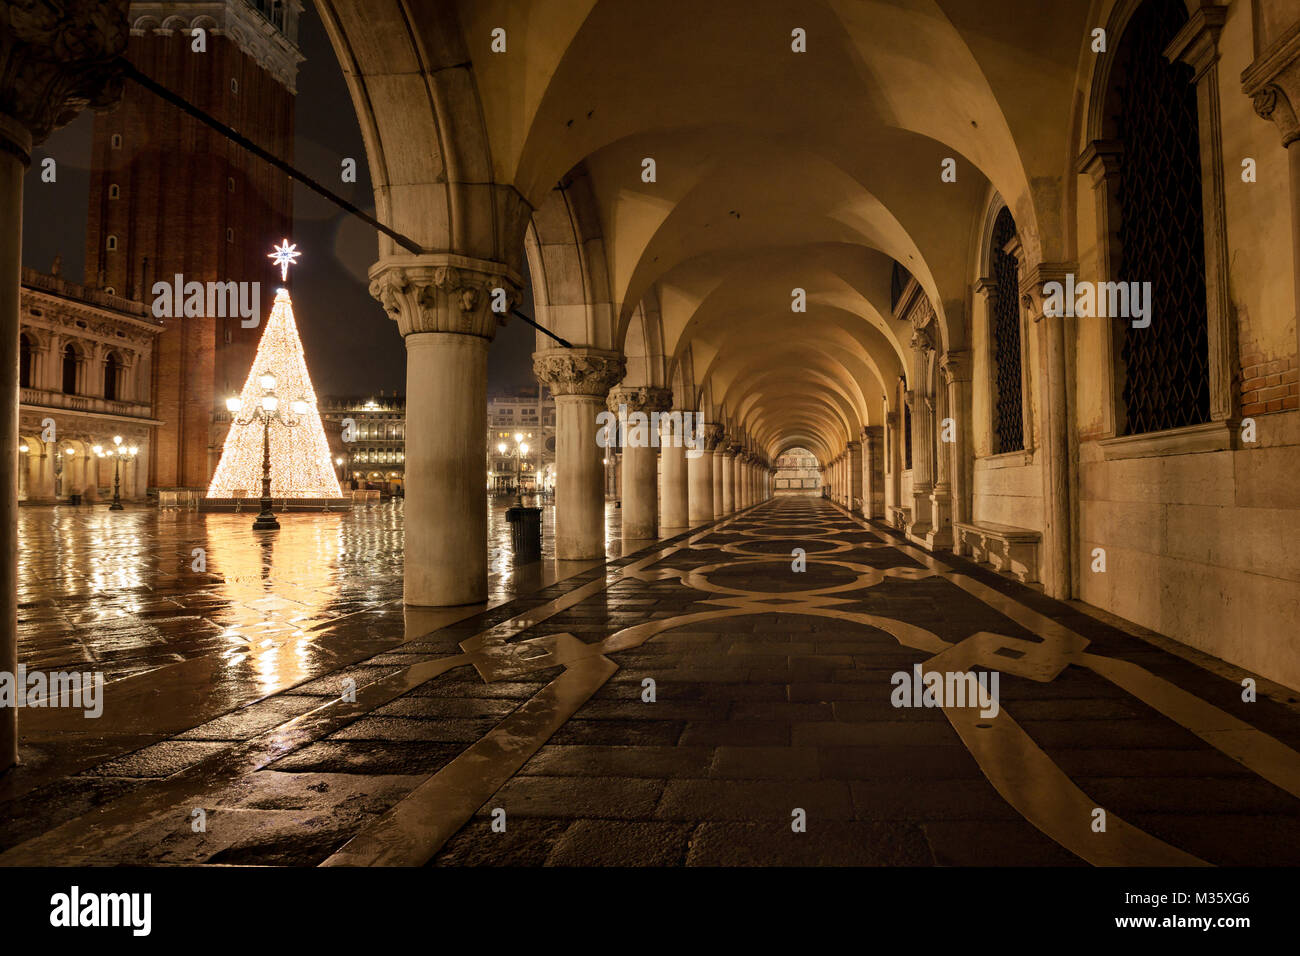 Venice Place san Marco at rainy night with wetness reflections the most famous place in Venice Italy - Stock Image